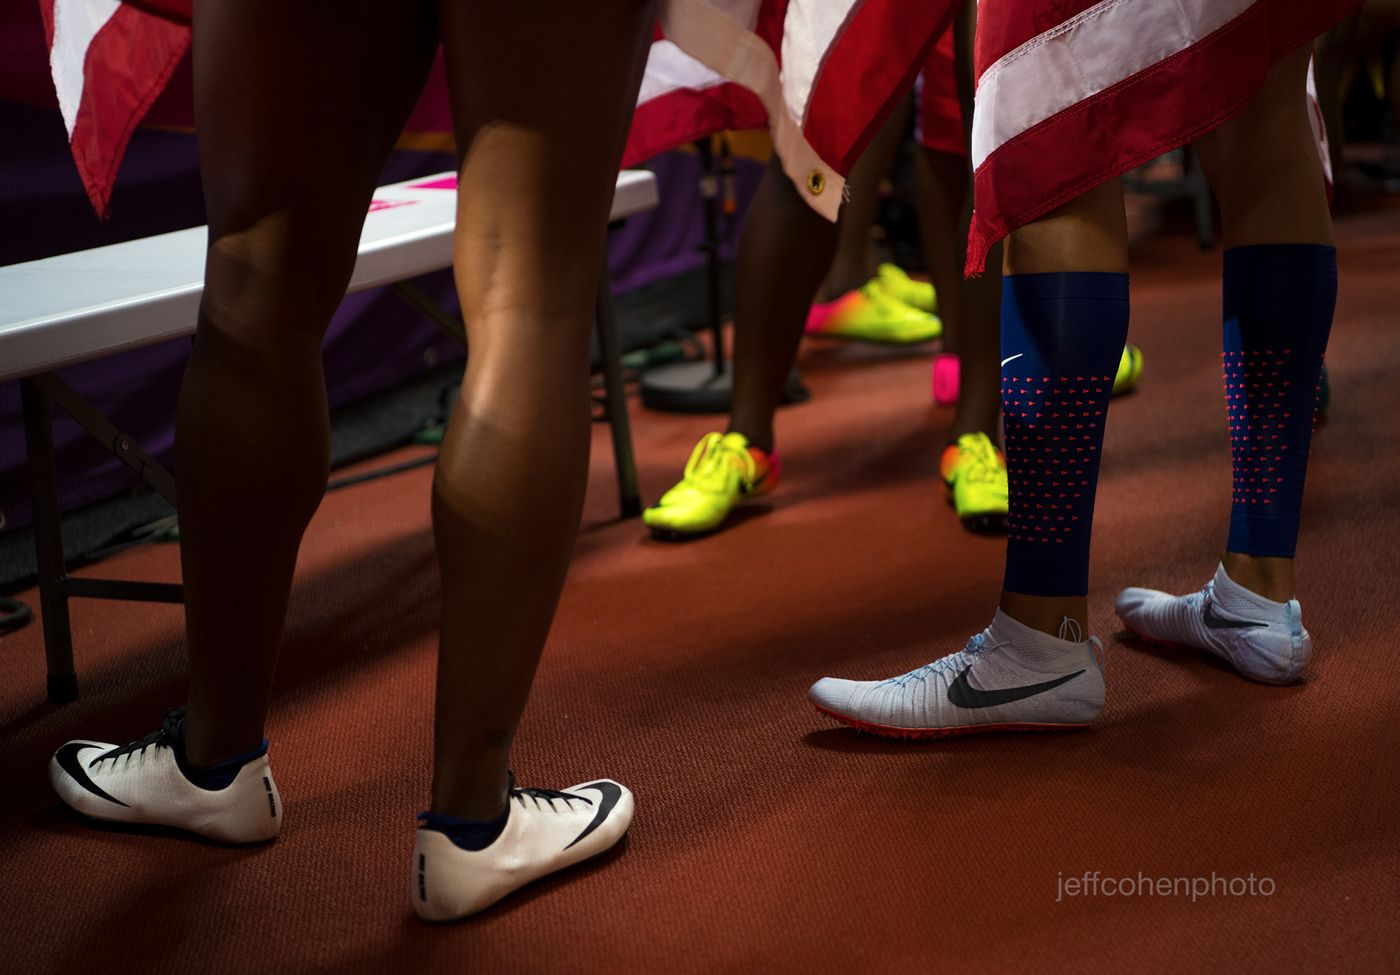 2017-IAAF-WC-London-night-9--4x1w-spikes-flags-4281--jeff-cohen-photo--web.jpg